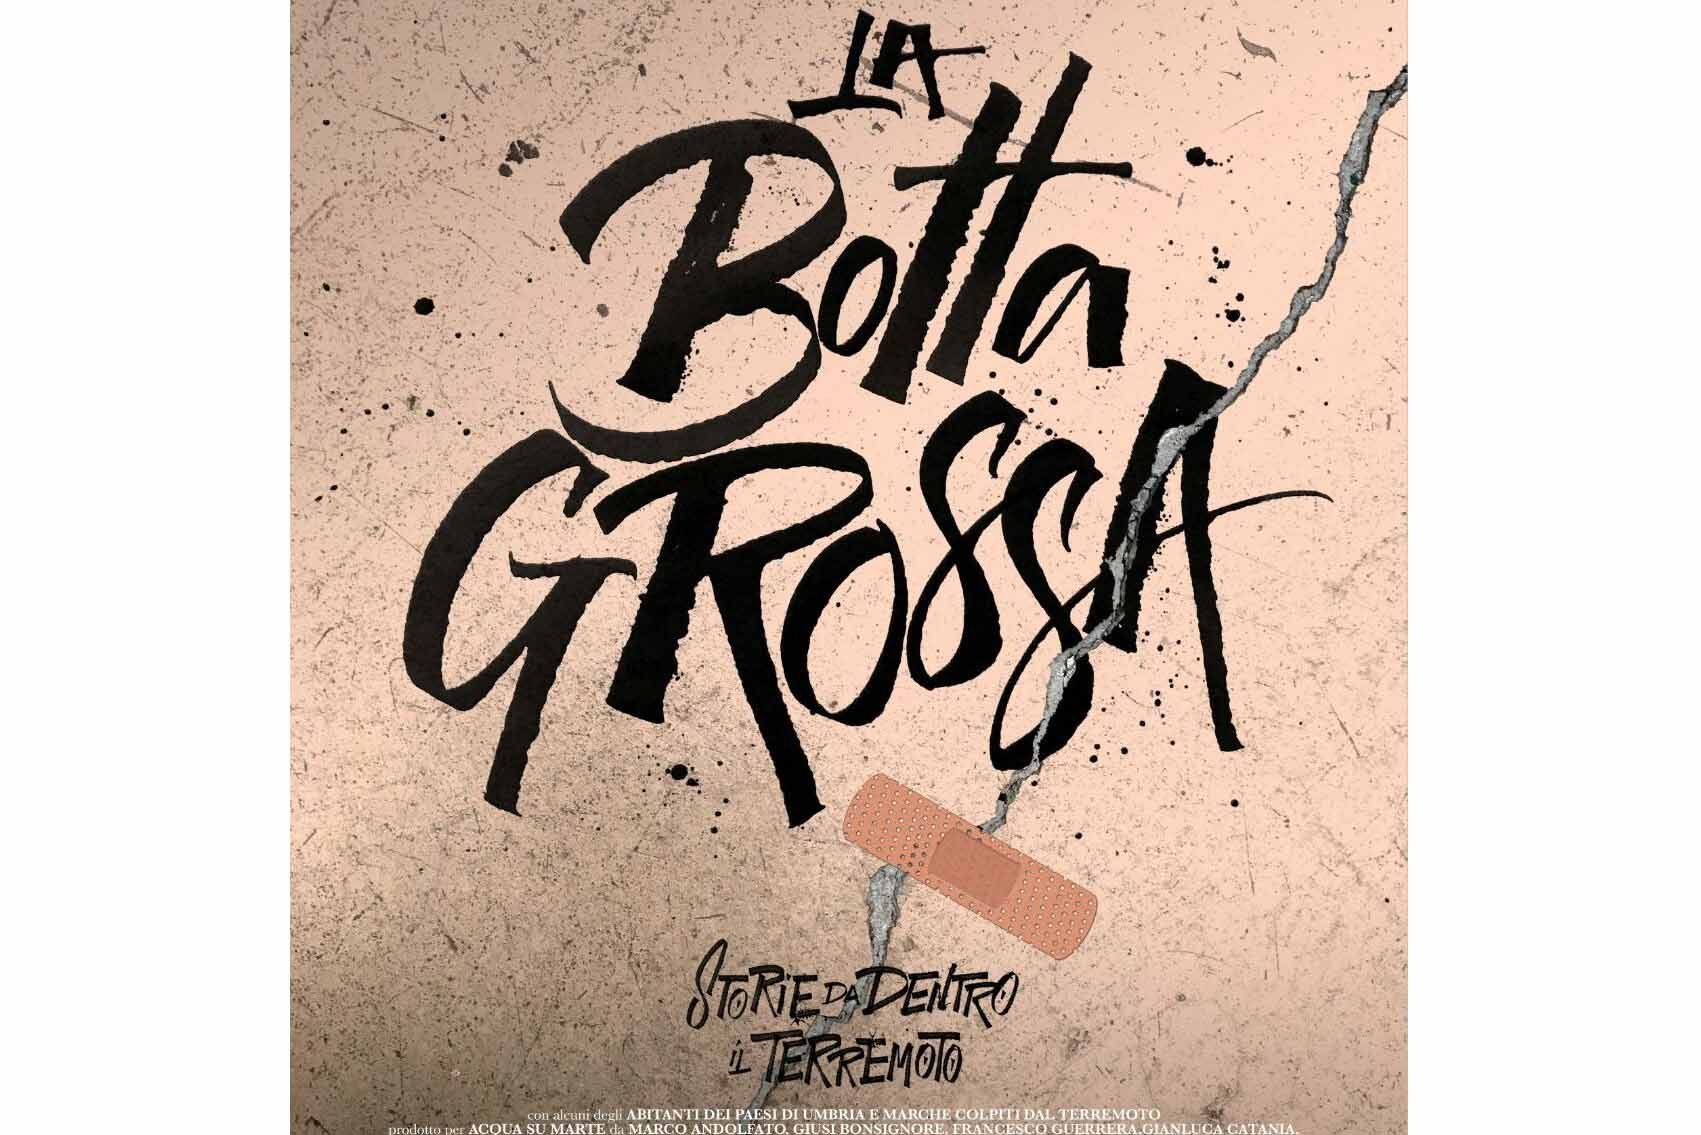 La-botta-grossa